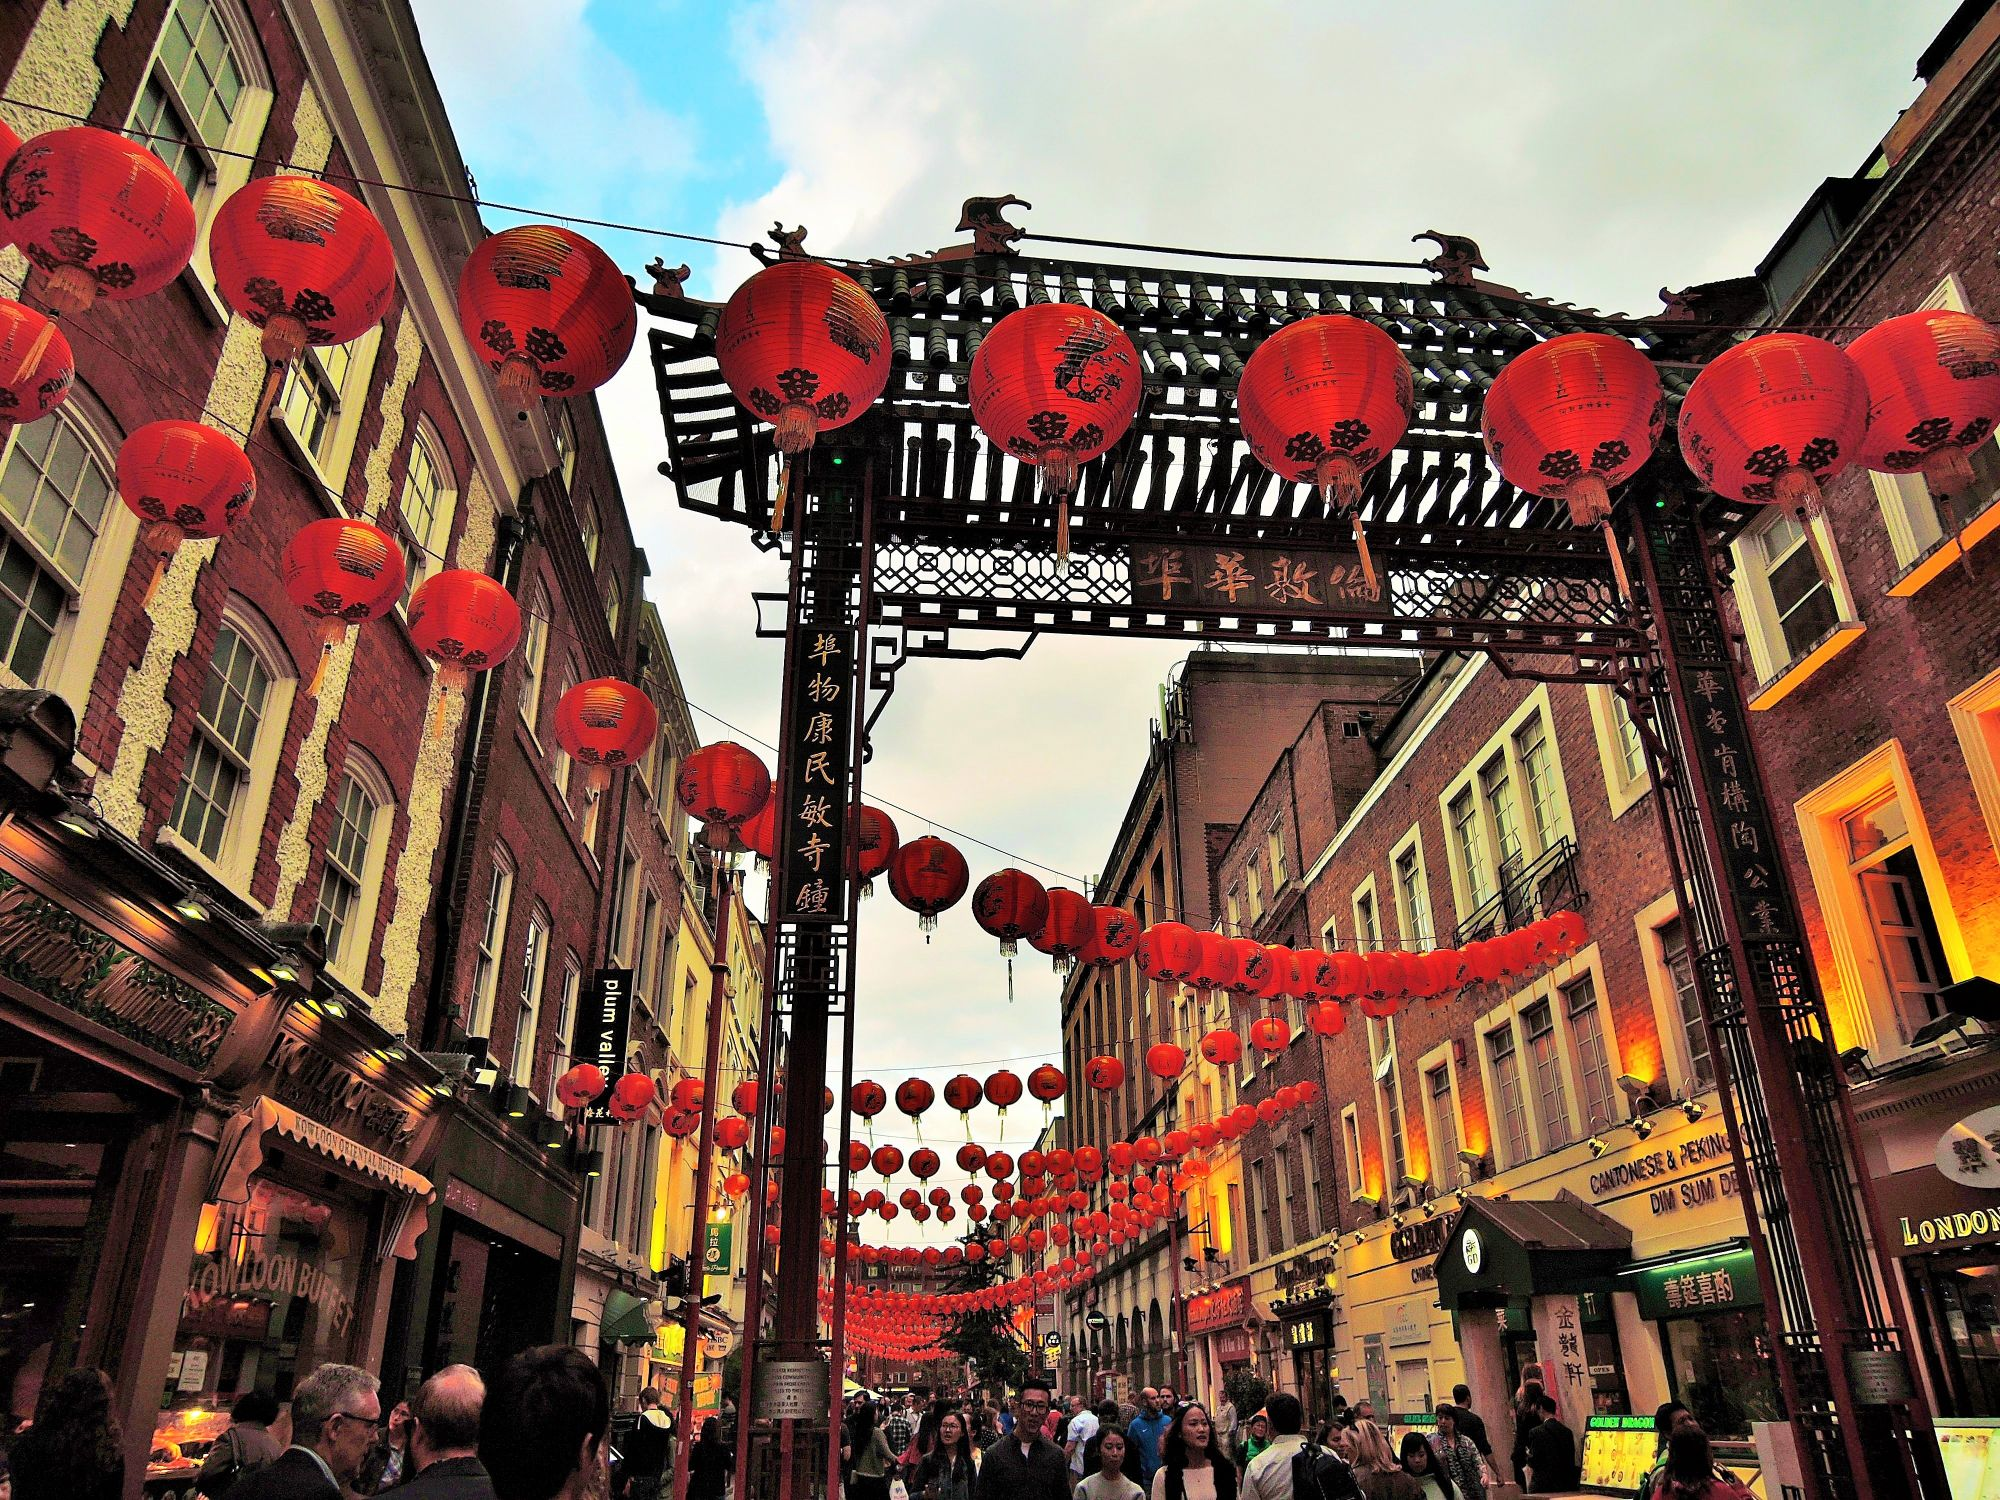 Photo of the main street in Chinatown. In the forefront is one of the ceremonial entrance gates. The street view shows restaurants and shops and the street is decorated with colourful, red paper lanterns.